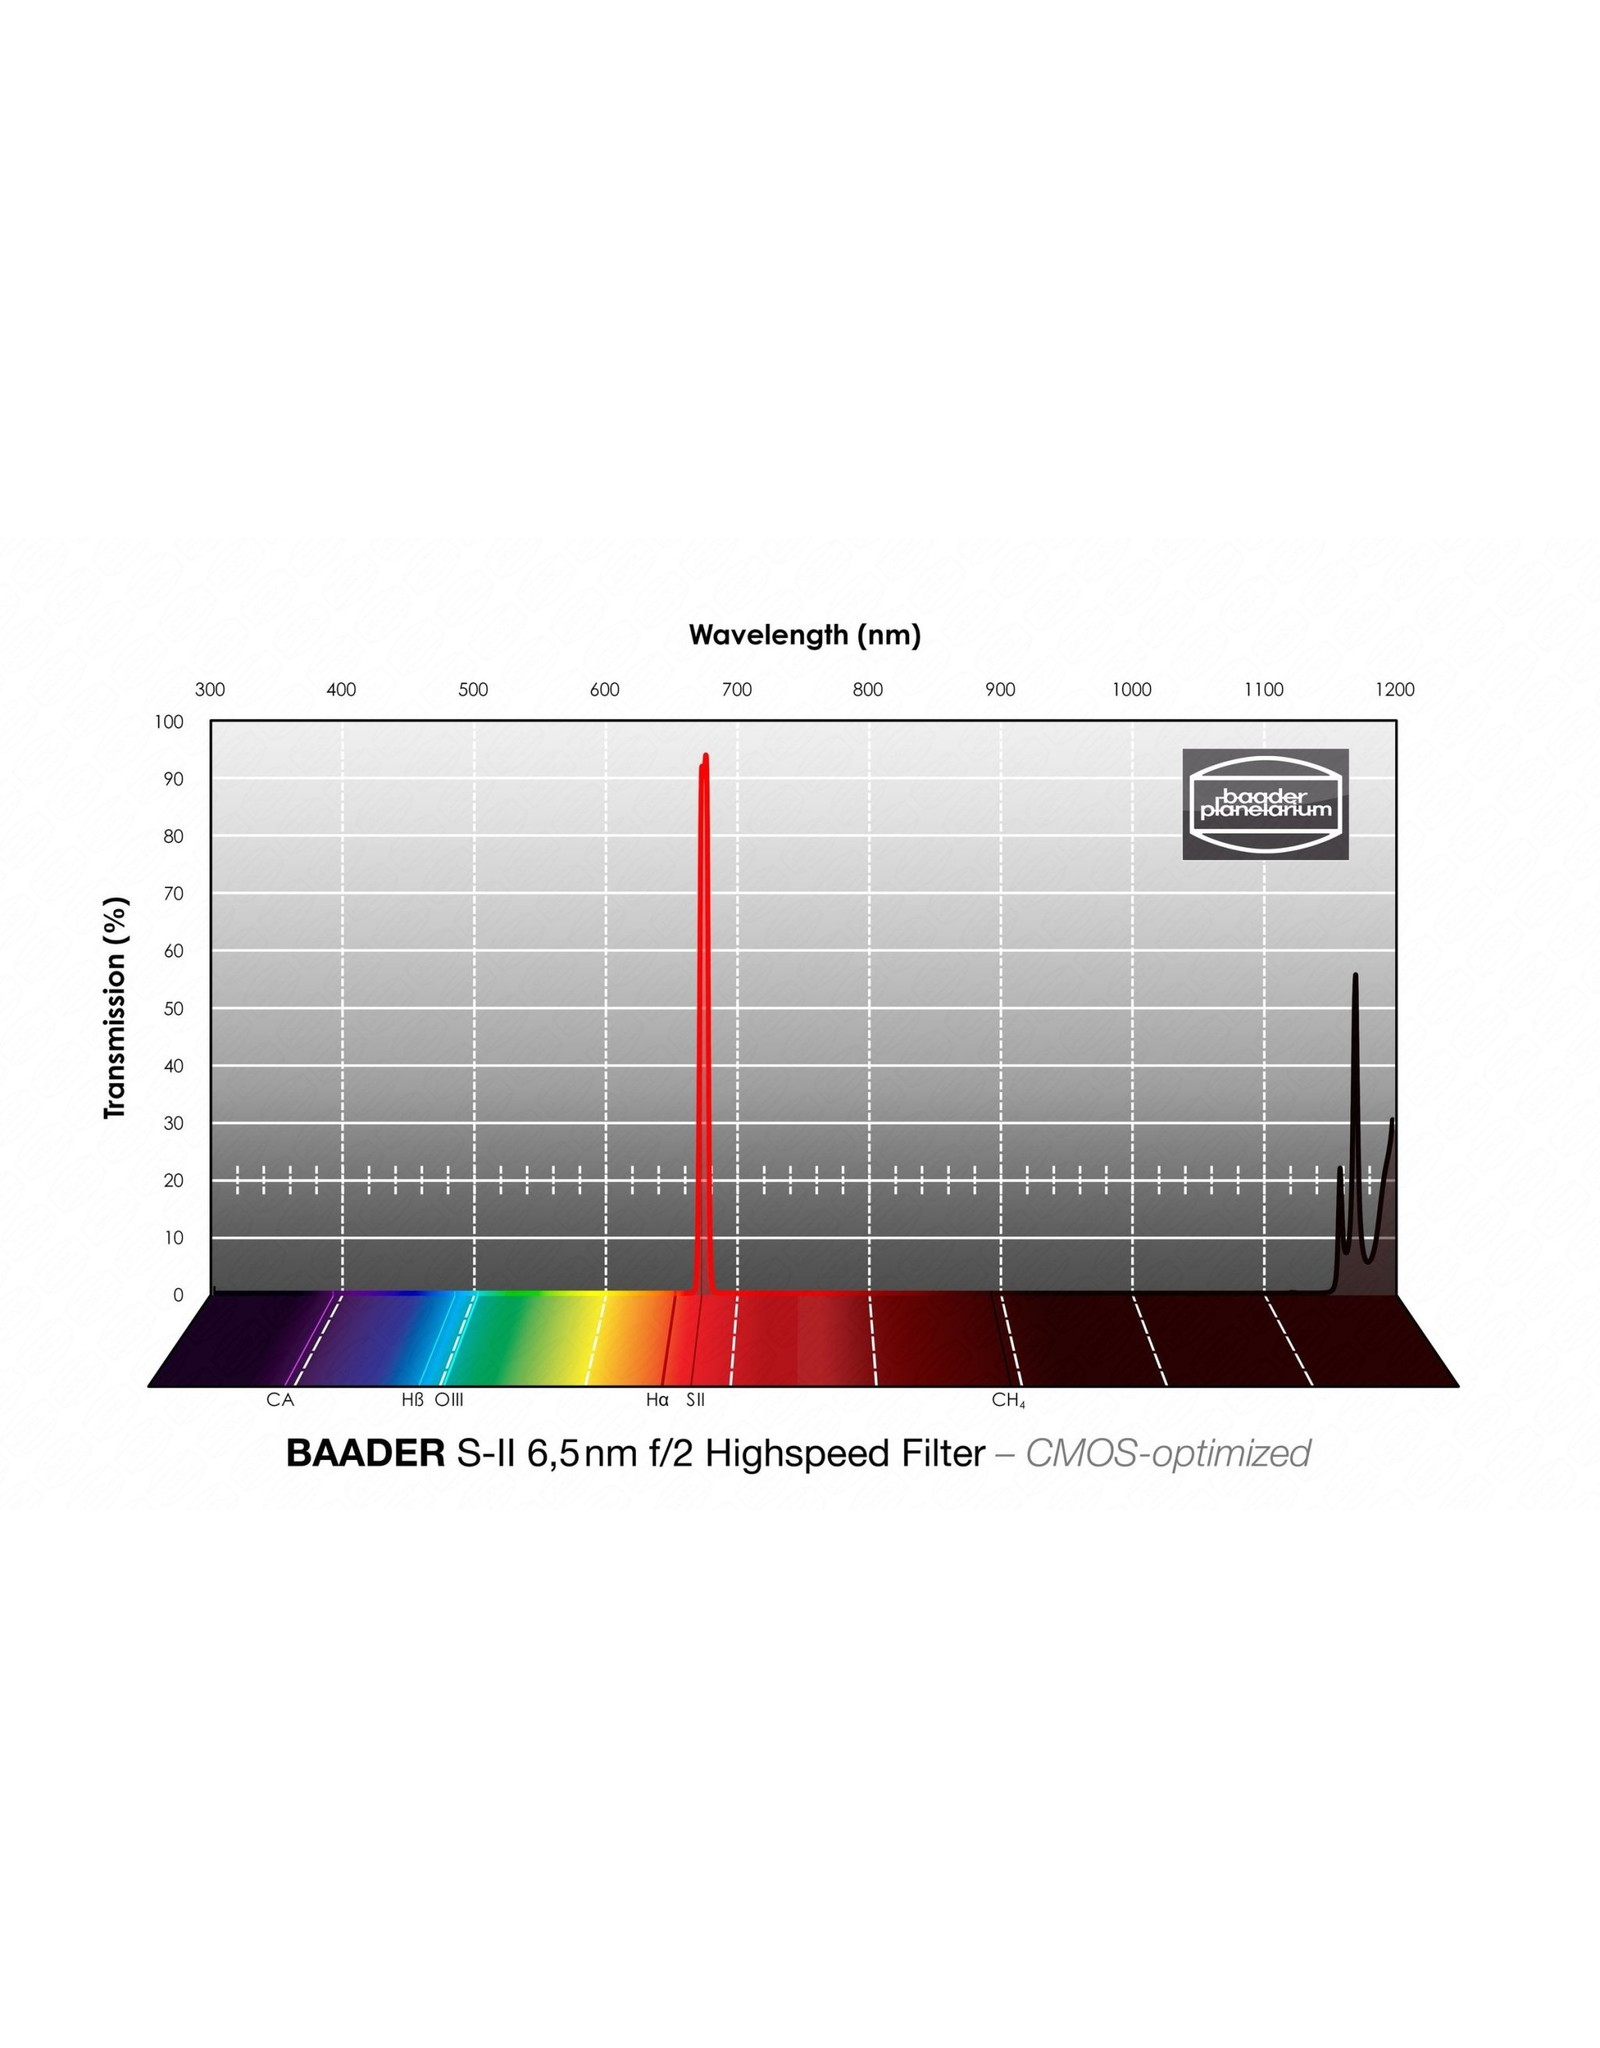 Baader Planetarium Baader 6nm f/2 Ultra-Highspeed Sulfur-II Filters – CMOS-optimized (Specify Size)